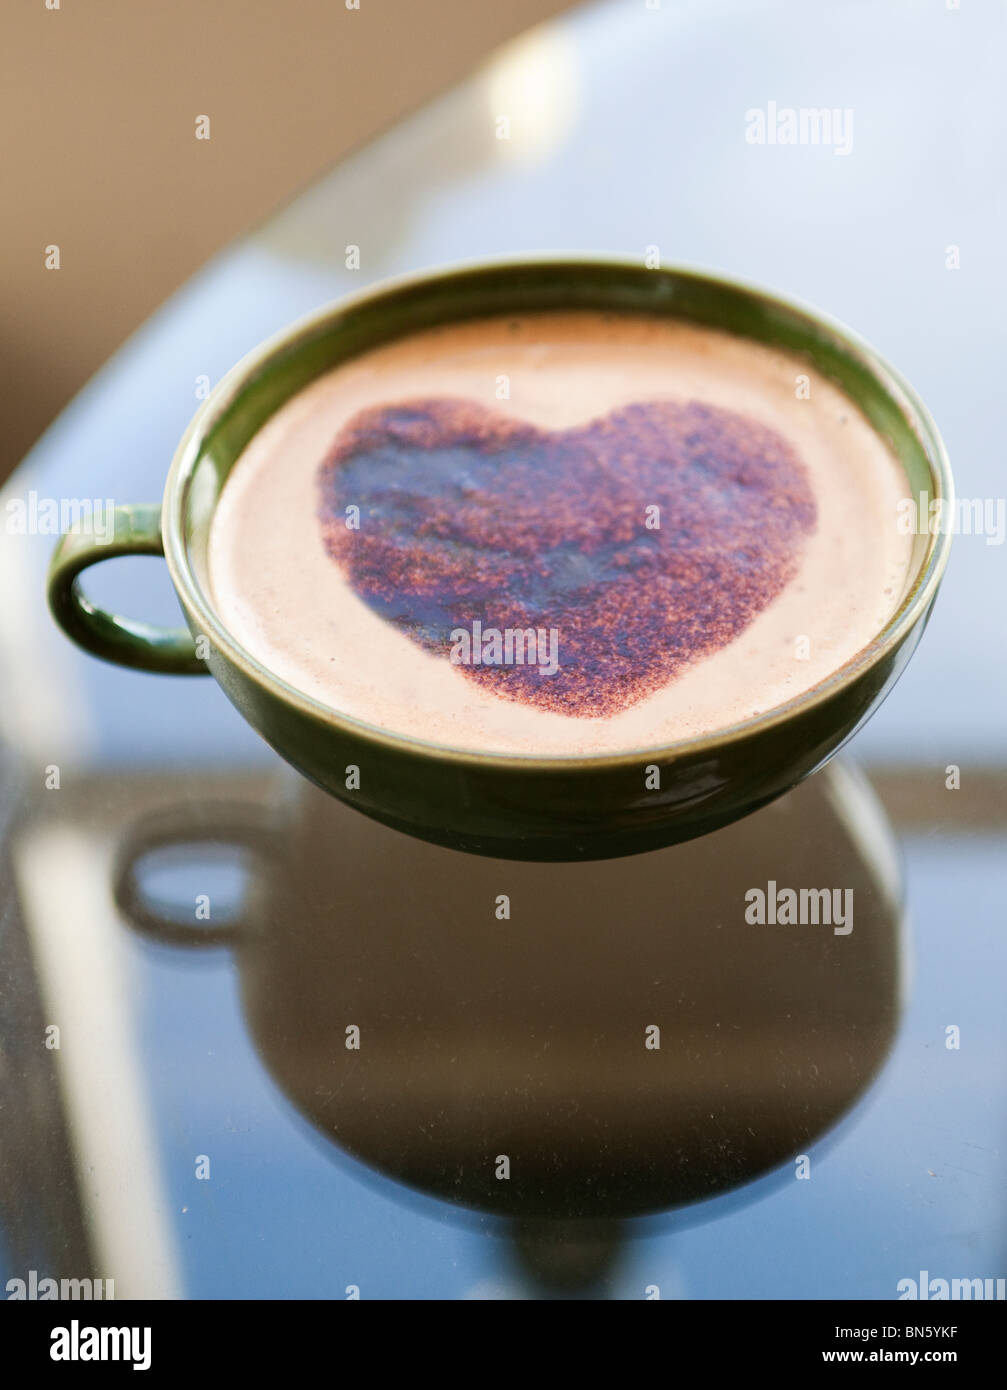 Coeur sur Coffee cup Photo Stock